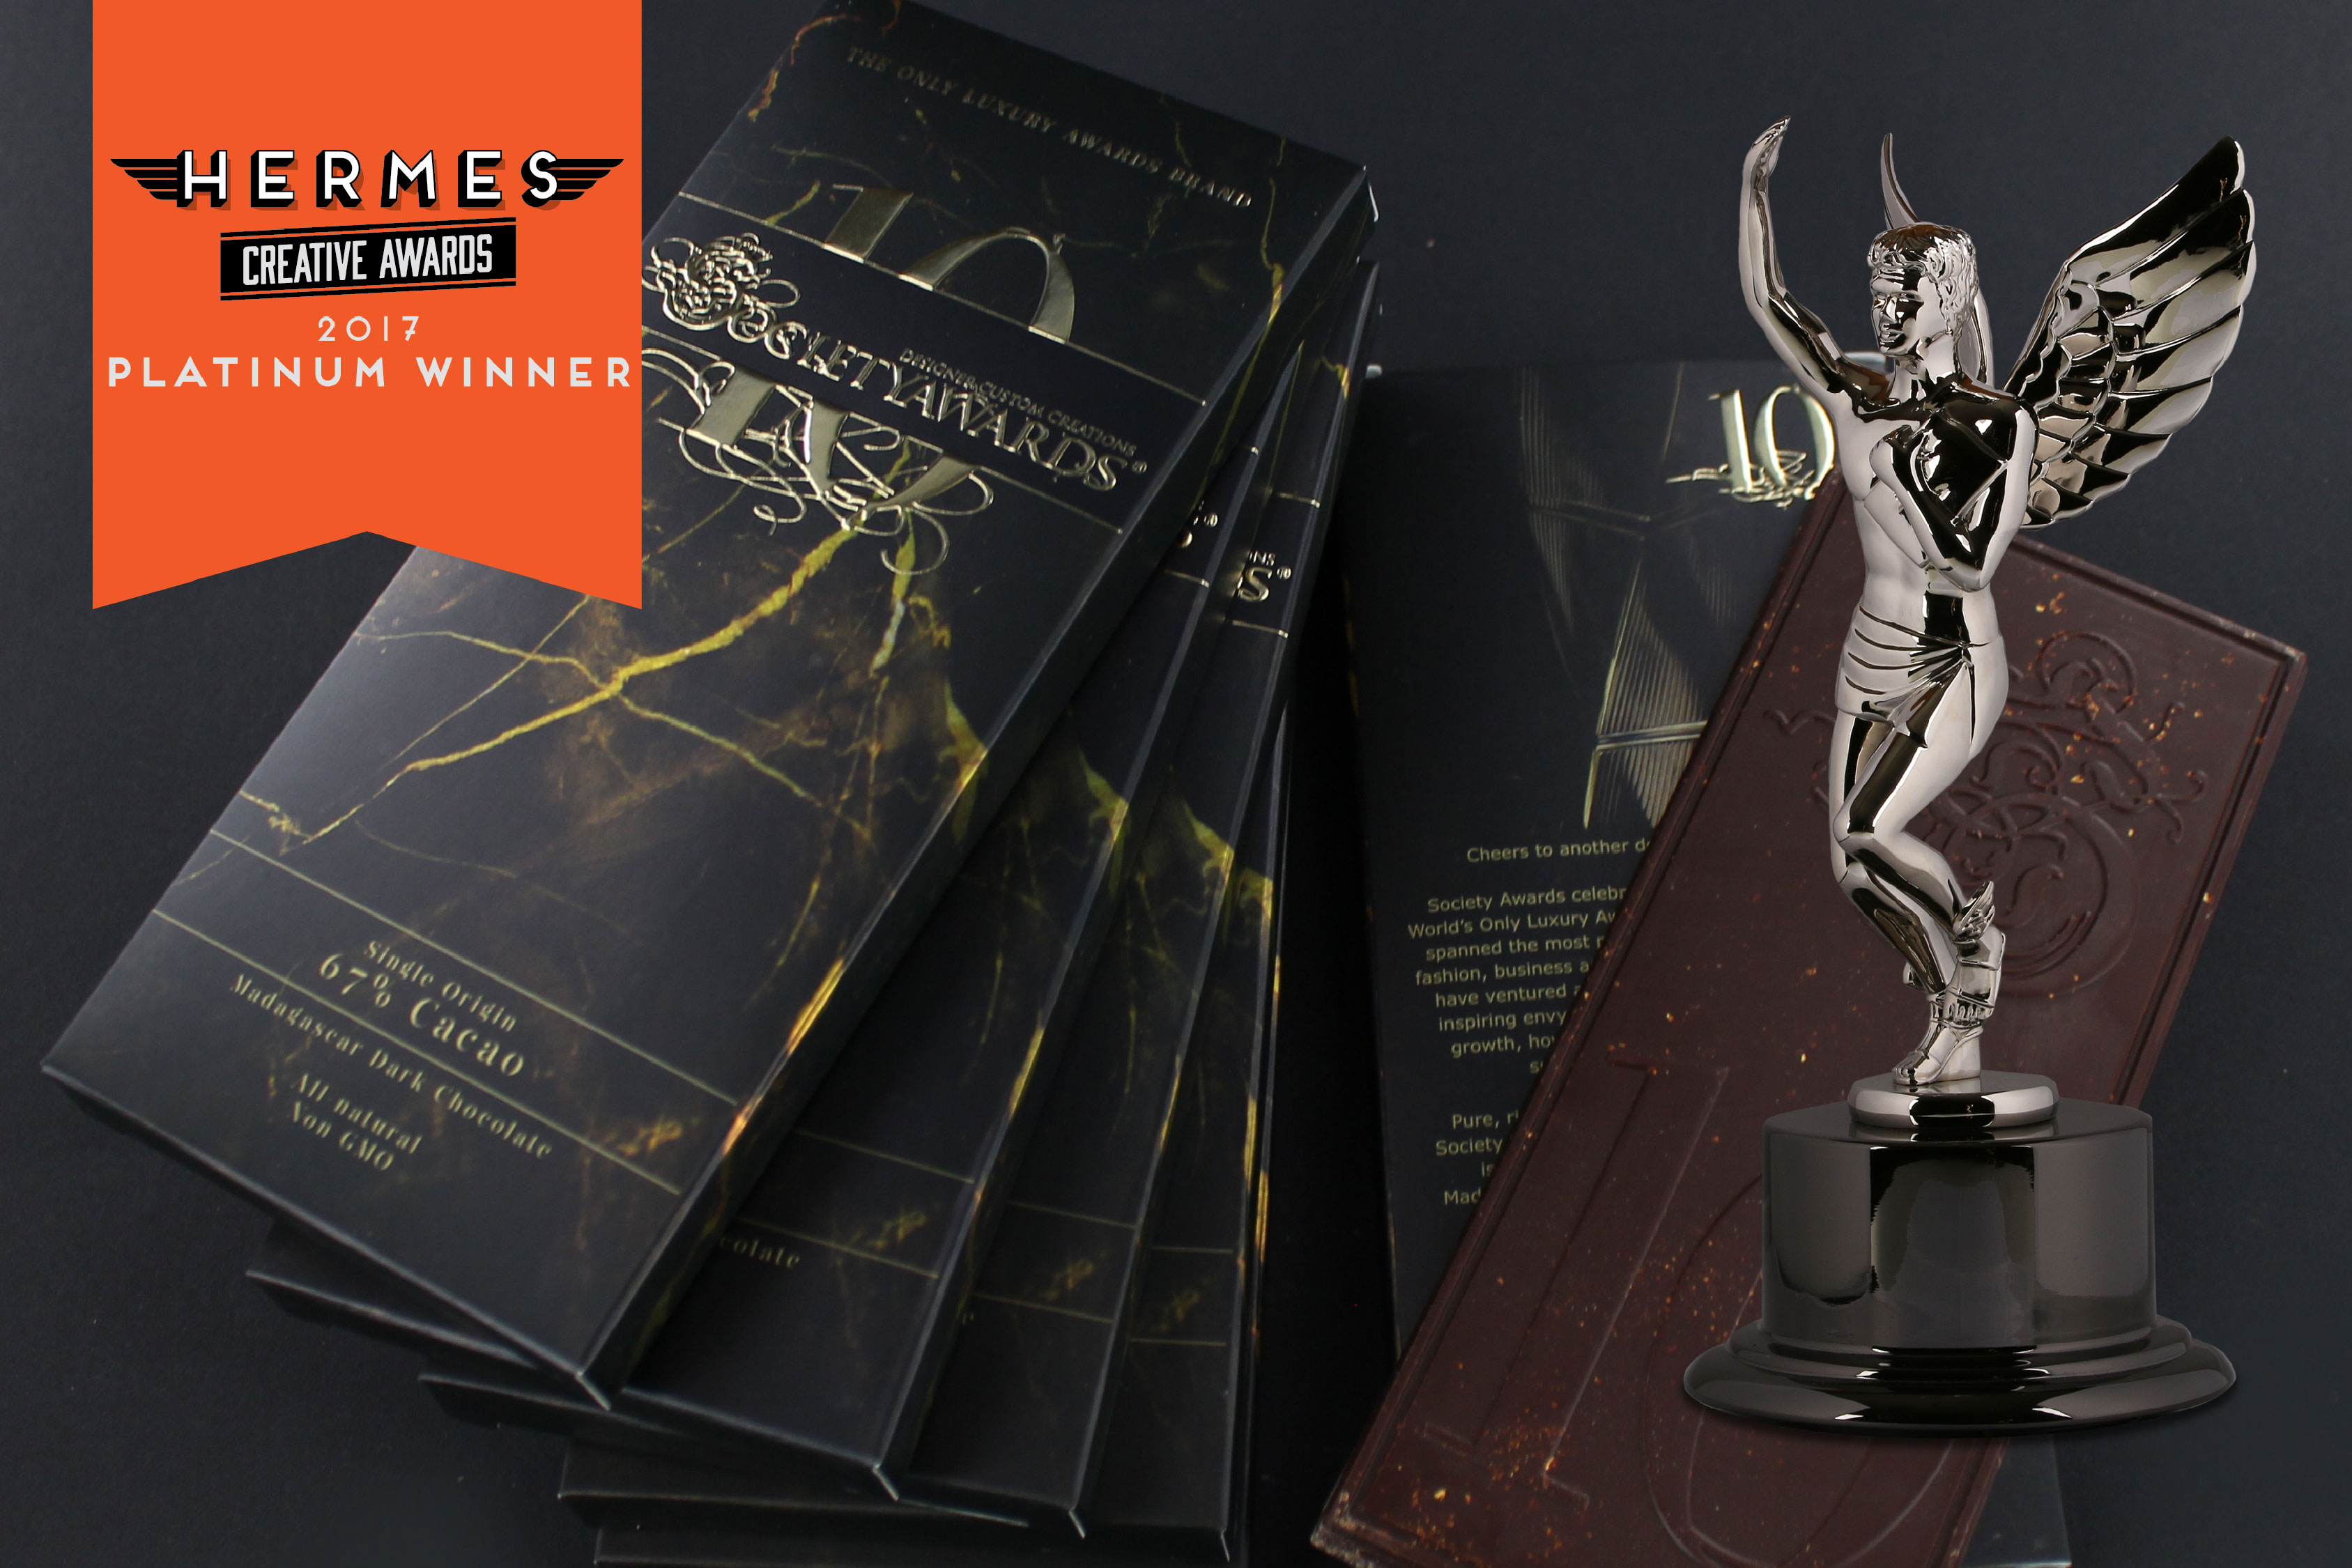 Stack of custom chocolate bar boxes designed by Viceroy Creative for our 10 Year Anniversary Chocolate. Also, image of Hermes award